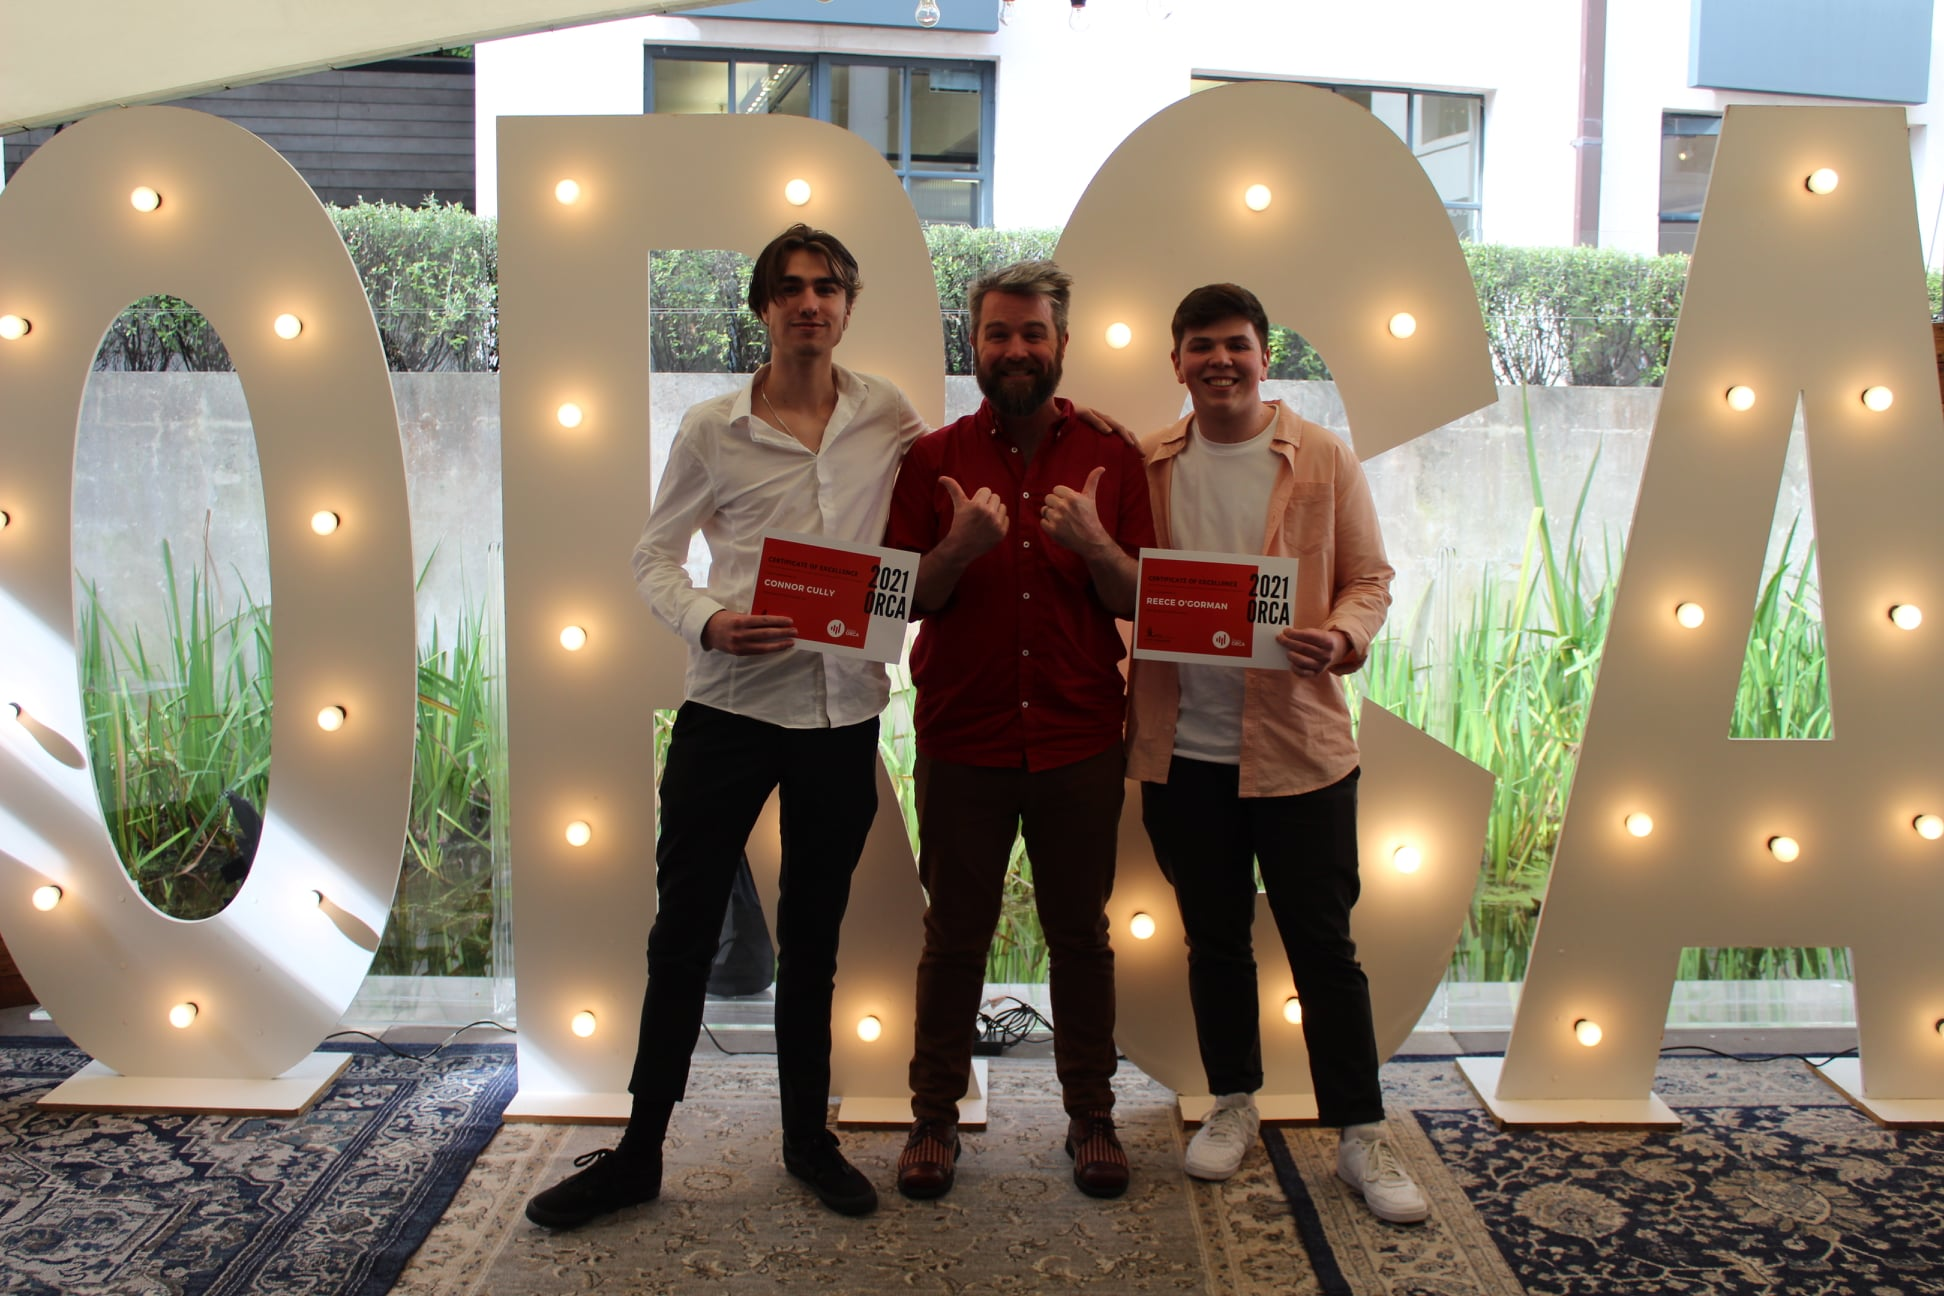 FCB's Adam Redmond and Emerson Hunt win Grand Orca for PAK'nSAVE 'Meat Hijack'